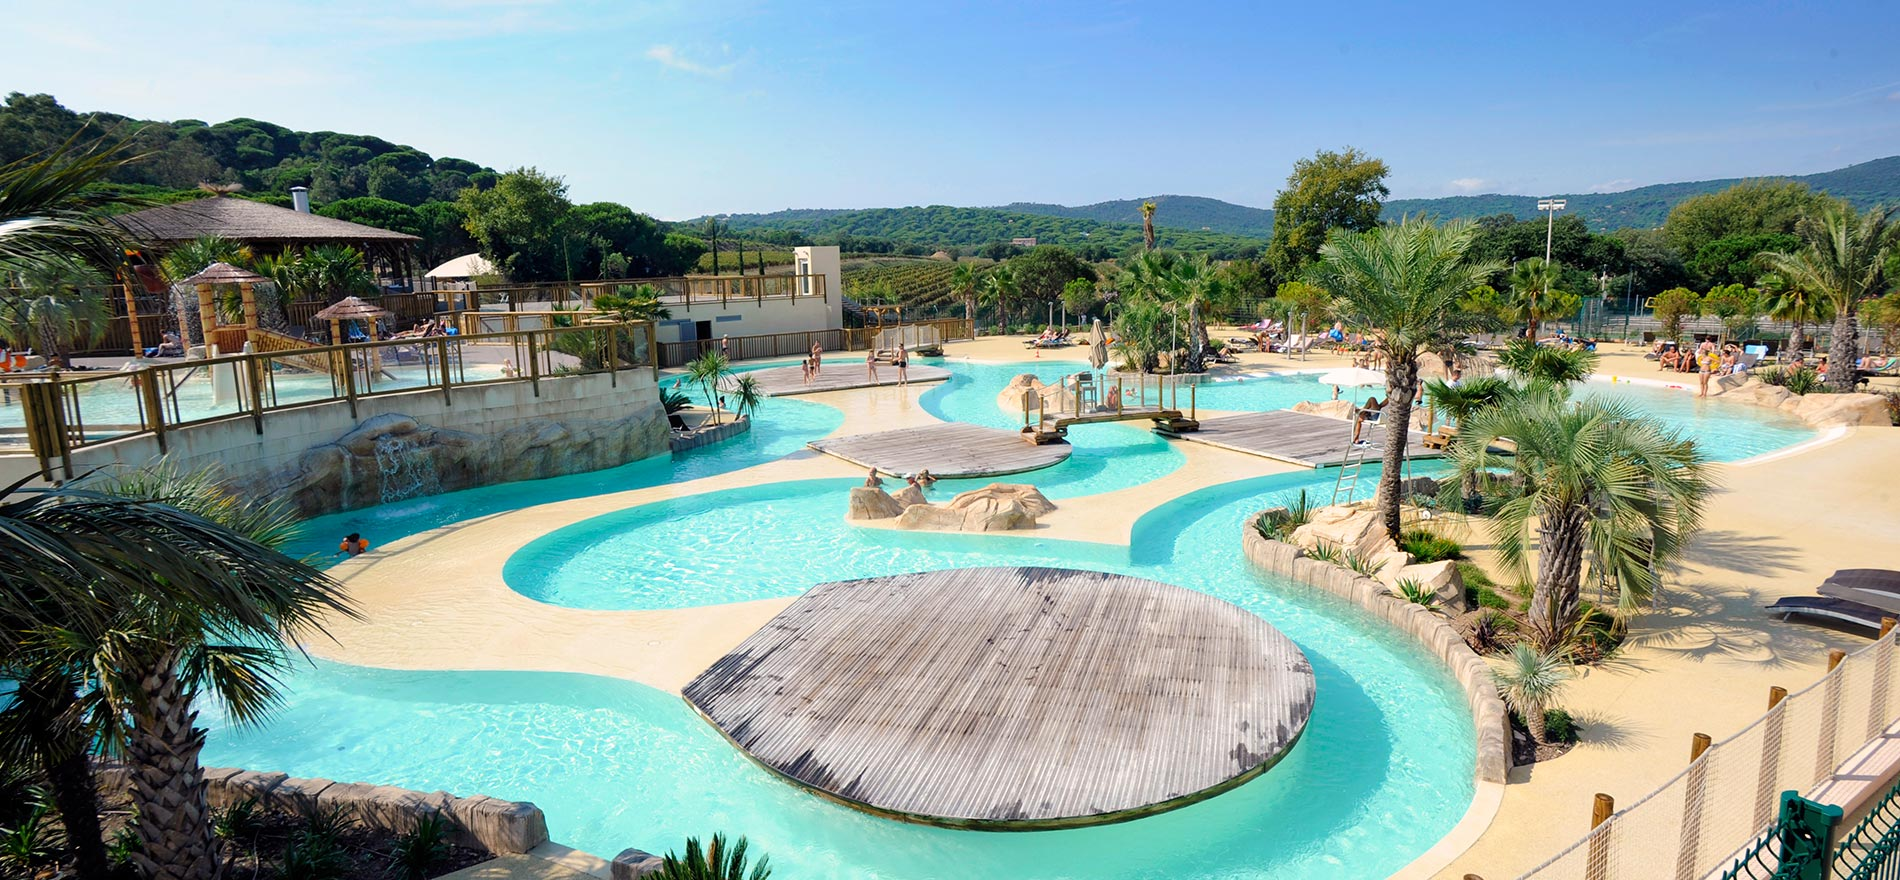 Camping les tournels yelloh village ramatuelle for Piscine du colombier